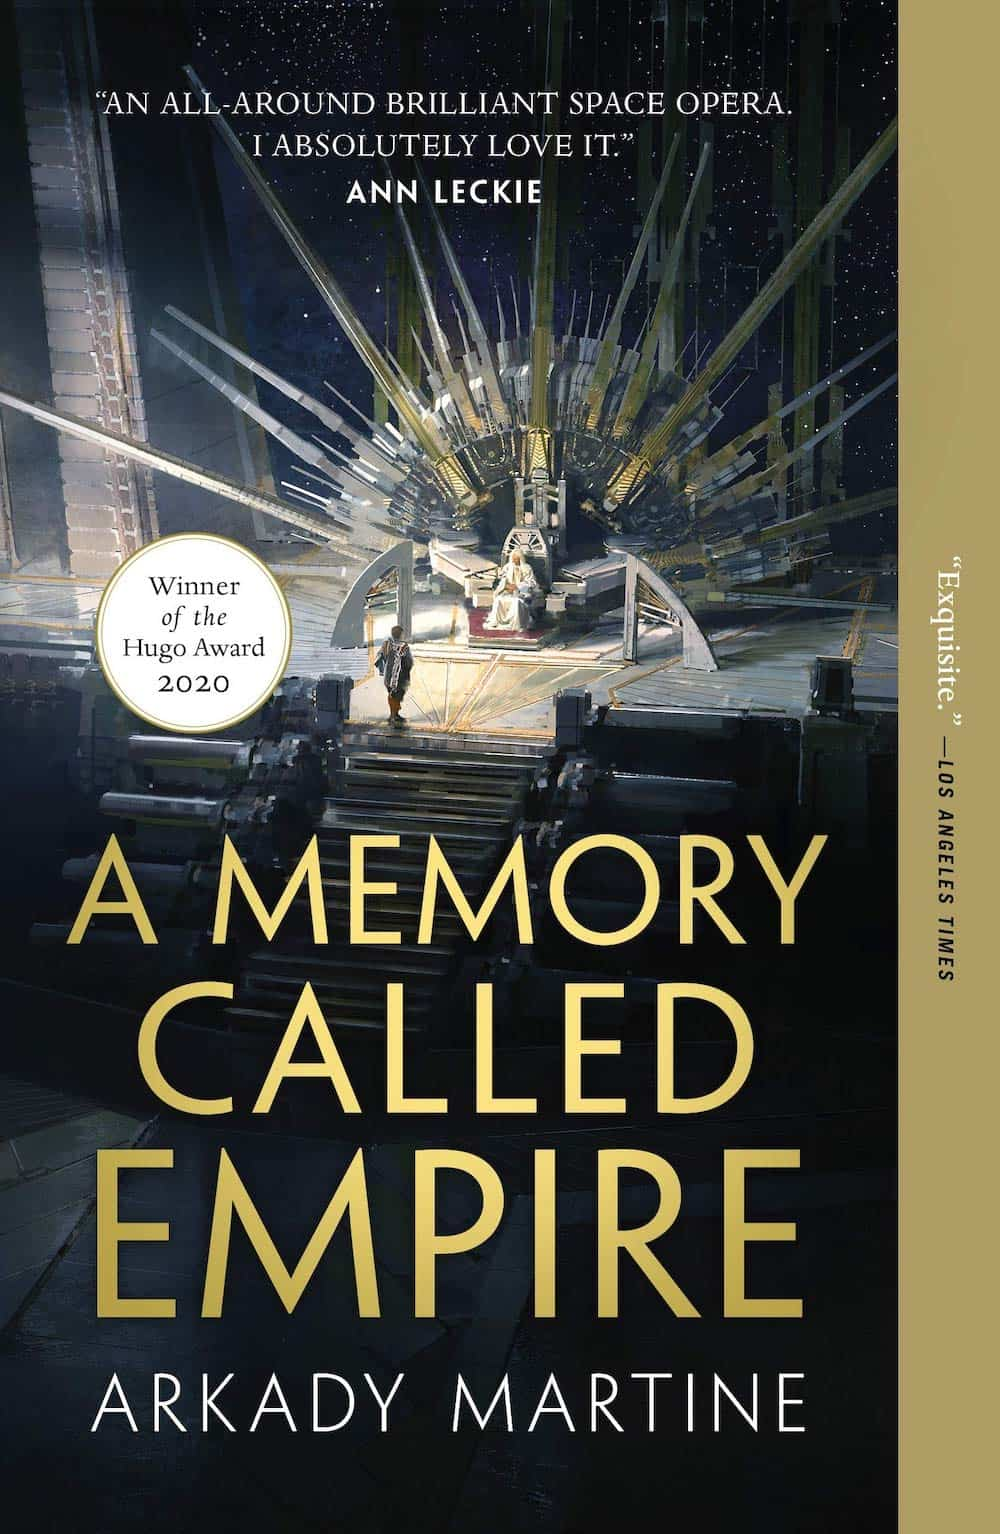 The cover of A Memory Called Empire